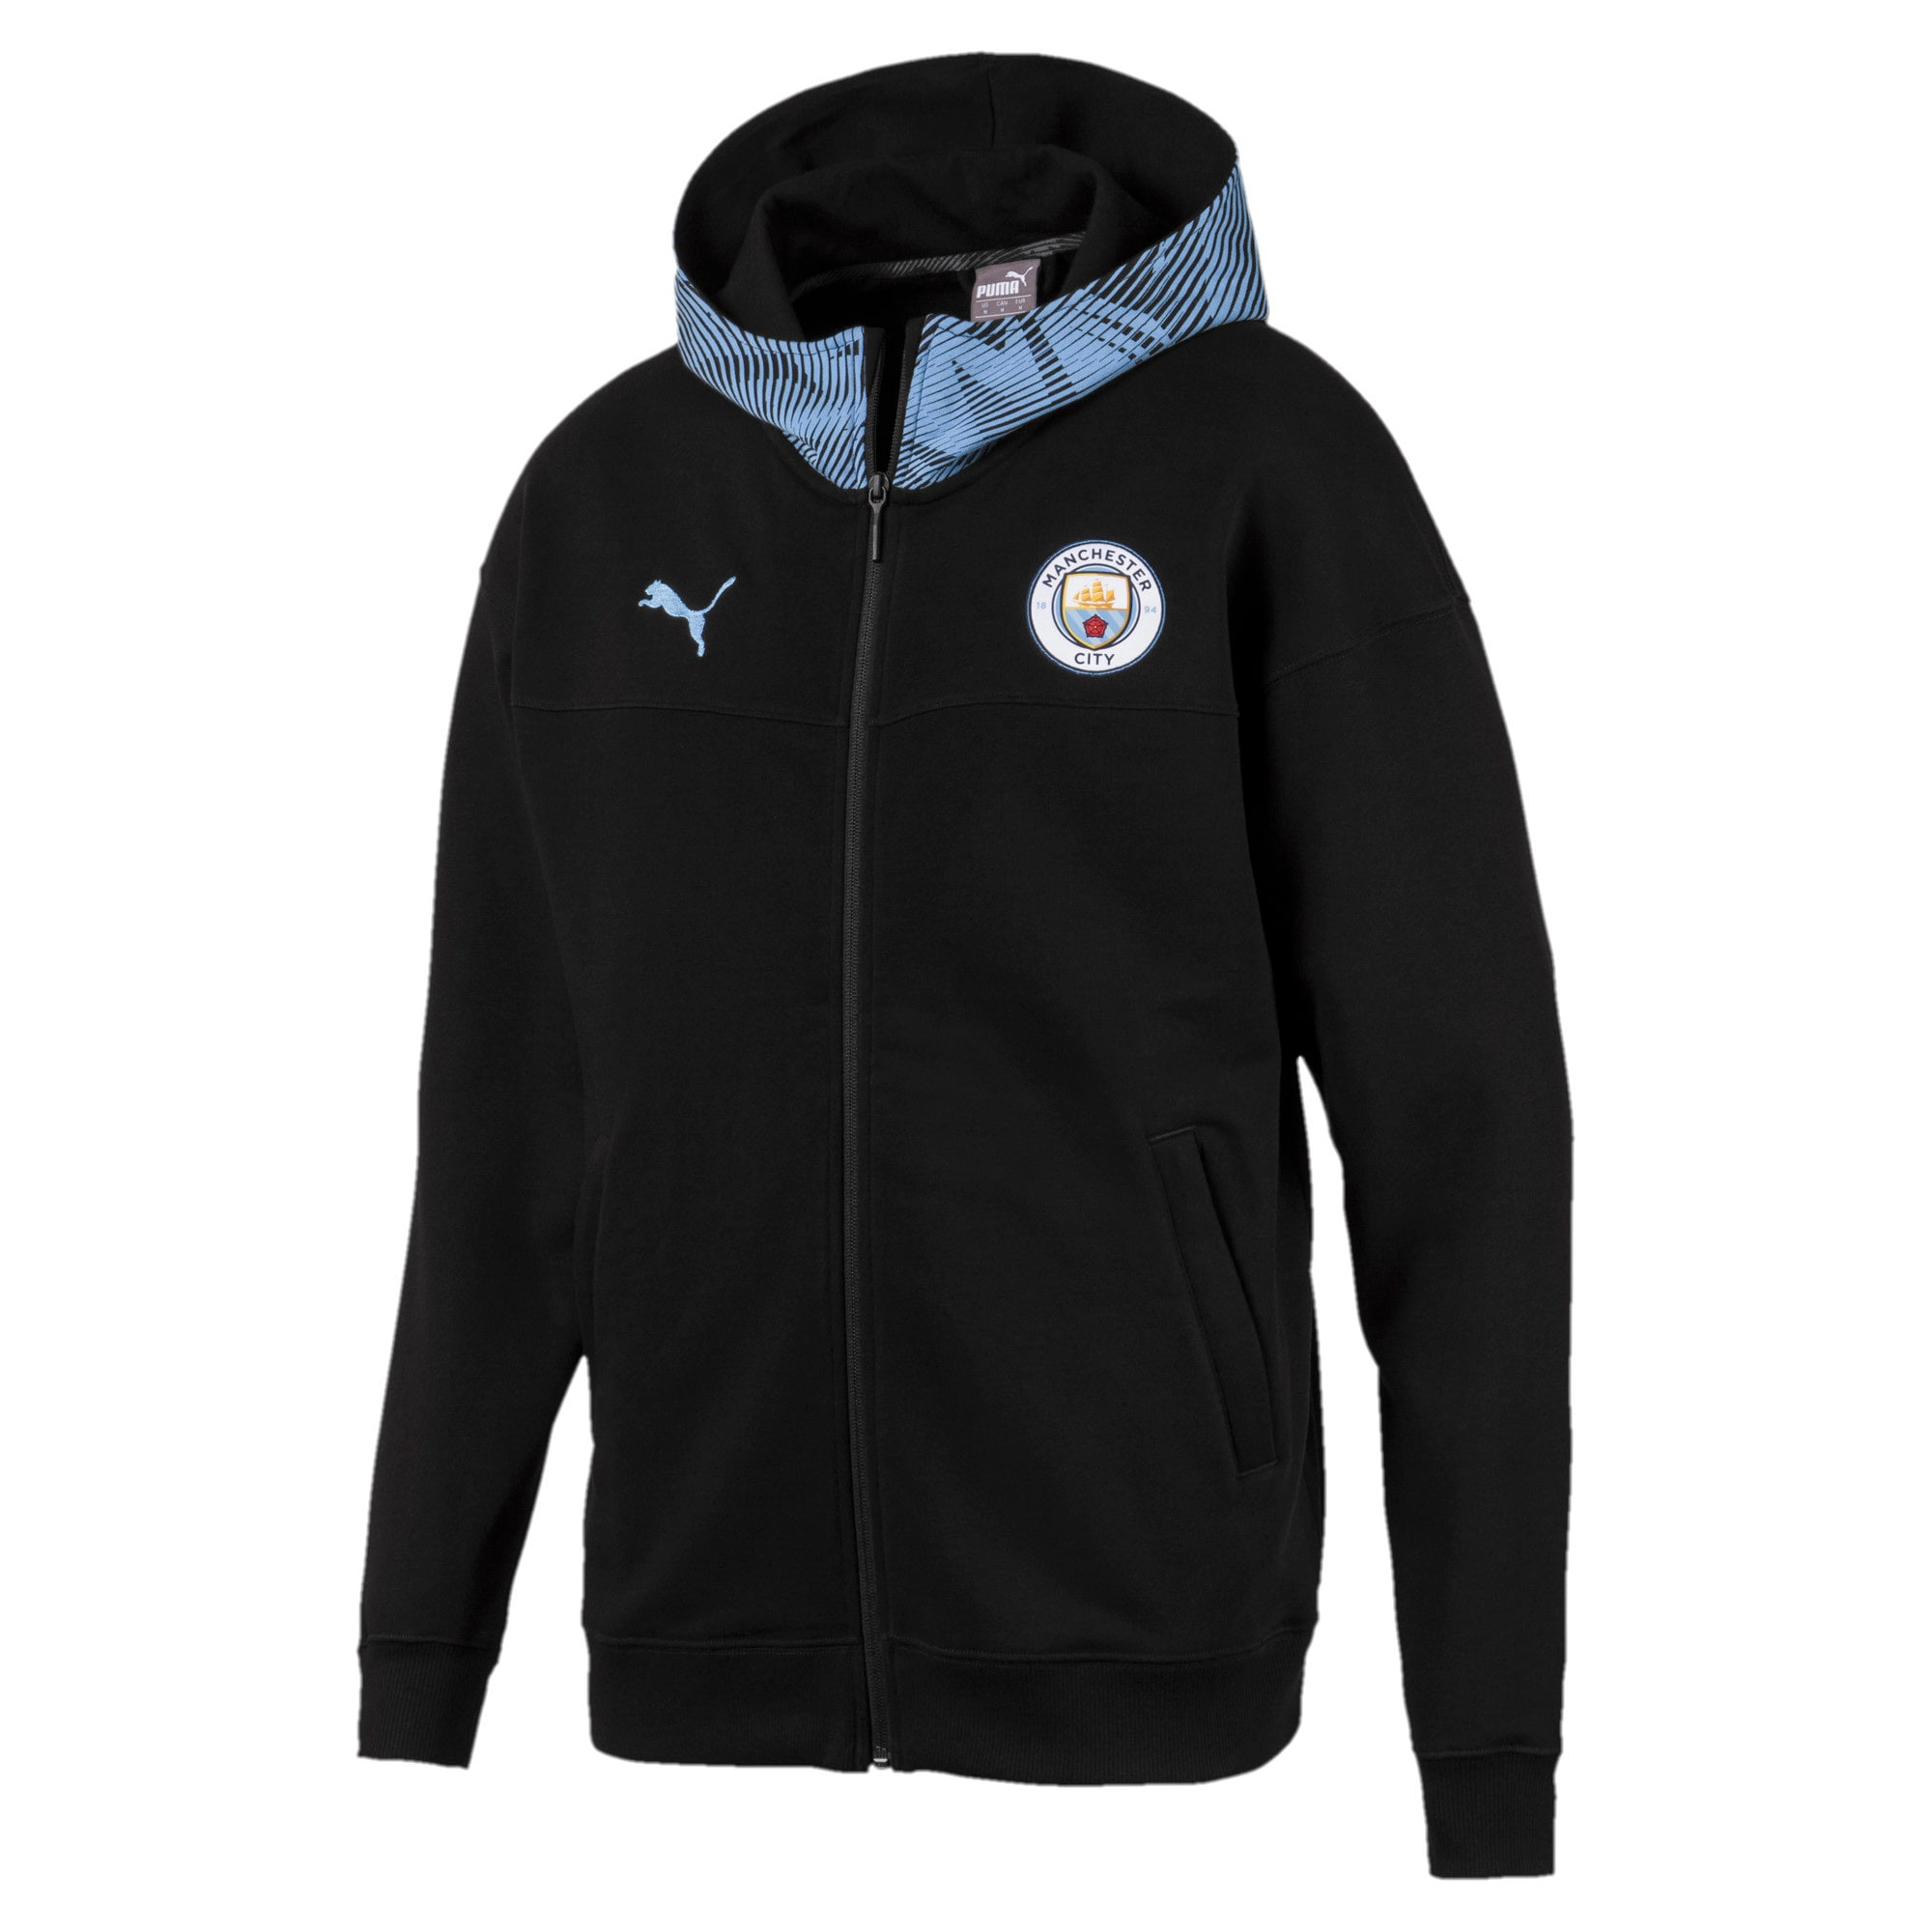 Thumbnail 1 of Manchester City Casuals Herren Kapuzenjacke, Puma Black-Team Light Blue, medium